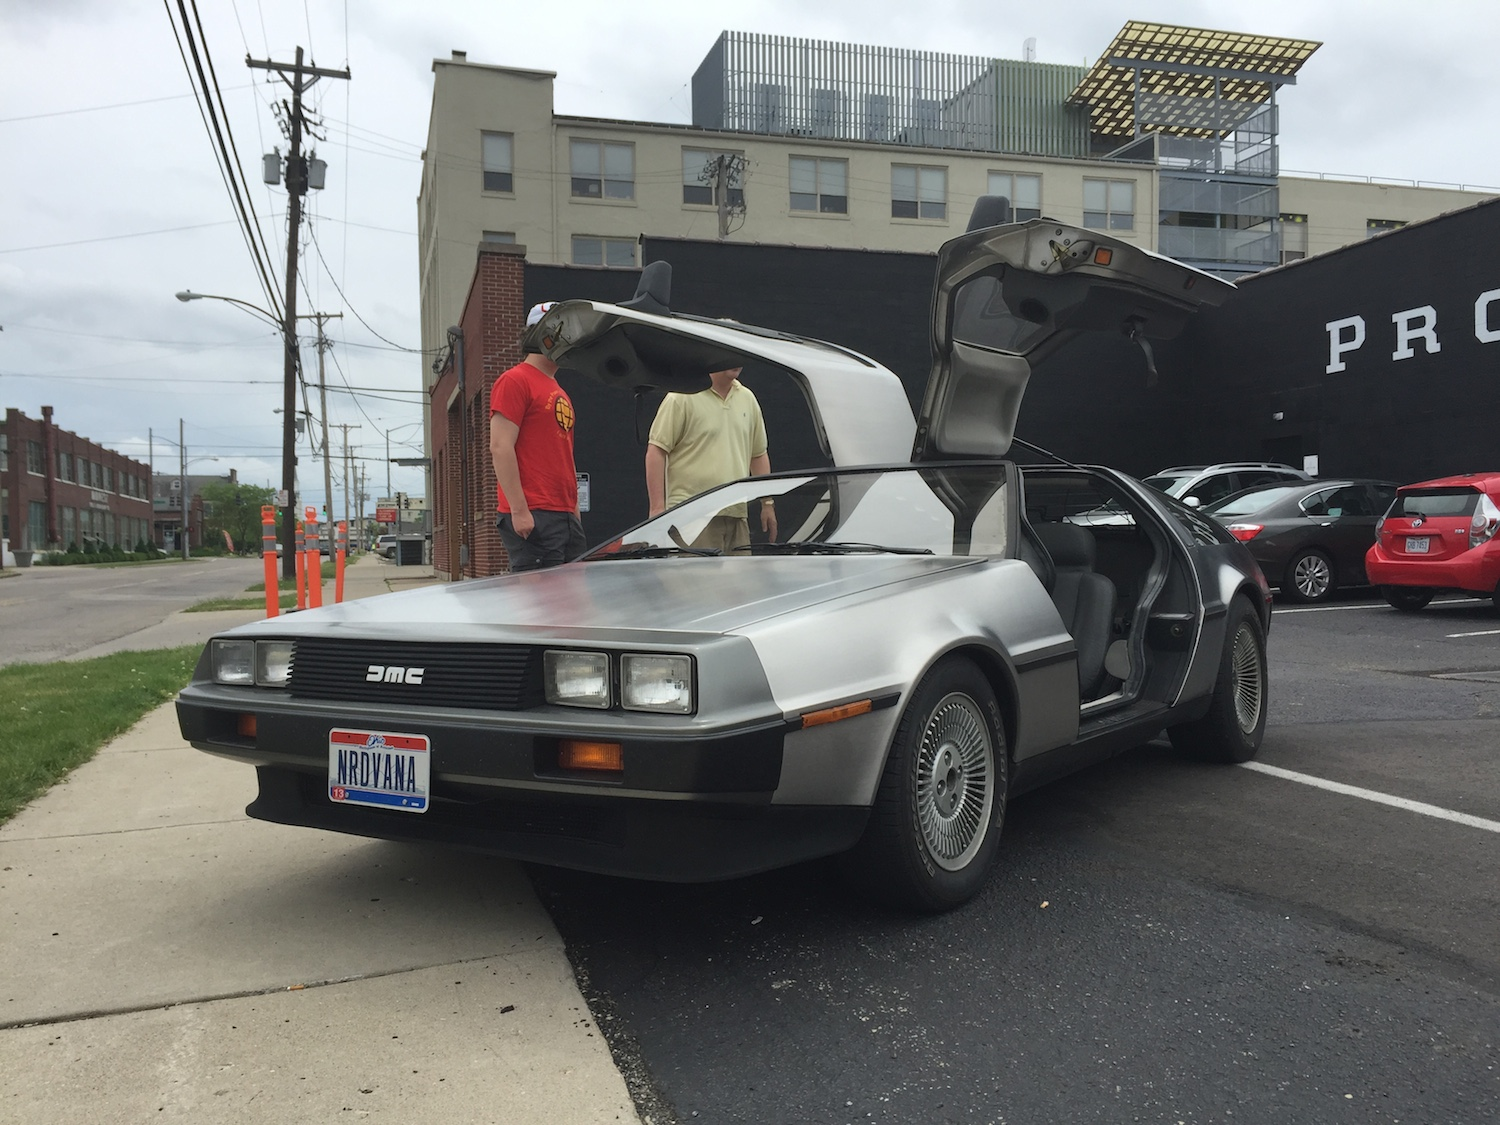 DeLorean at Dayton's Proto BuildBar